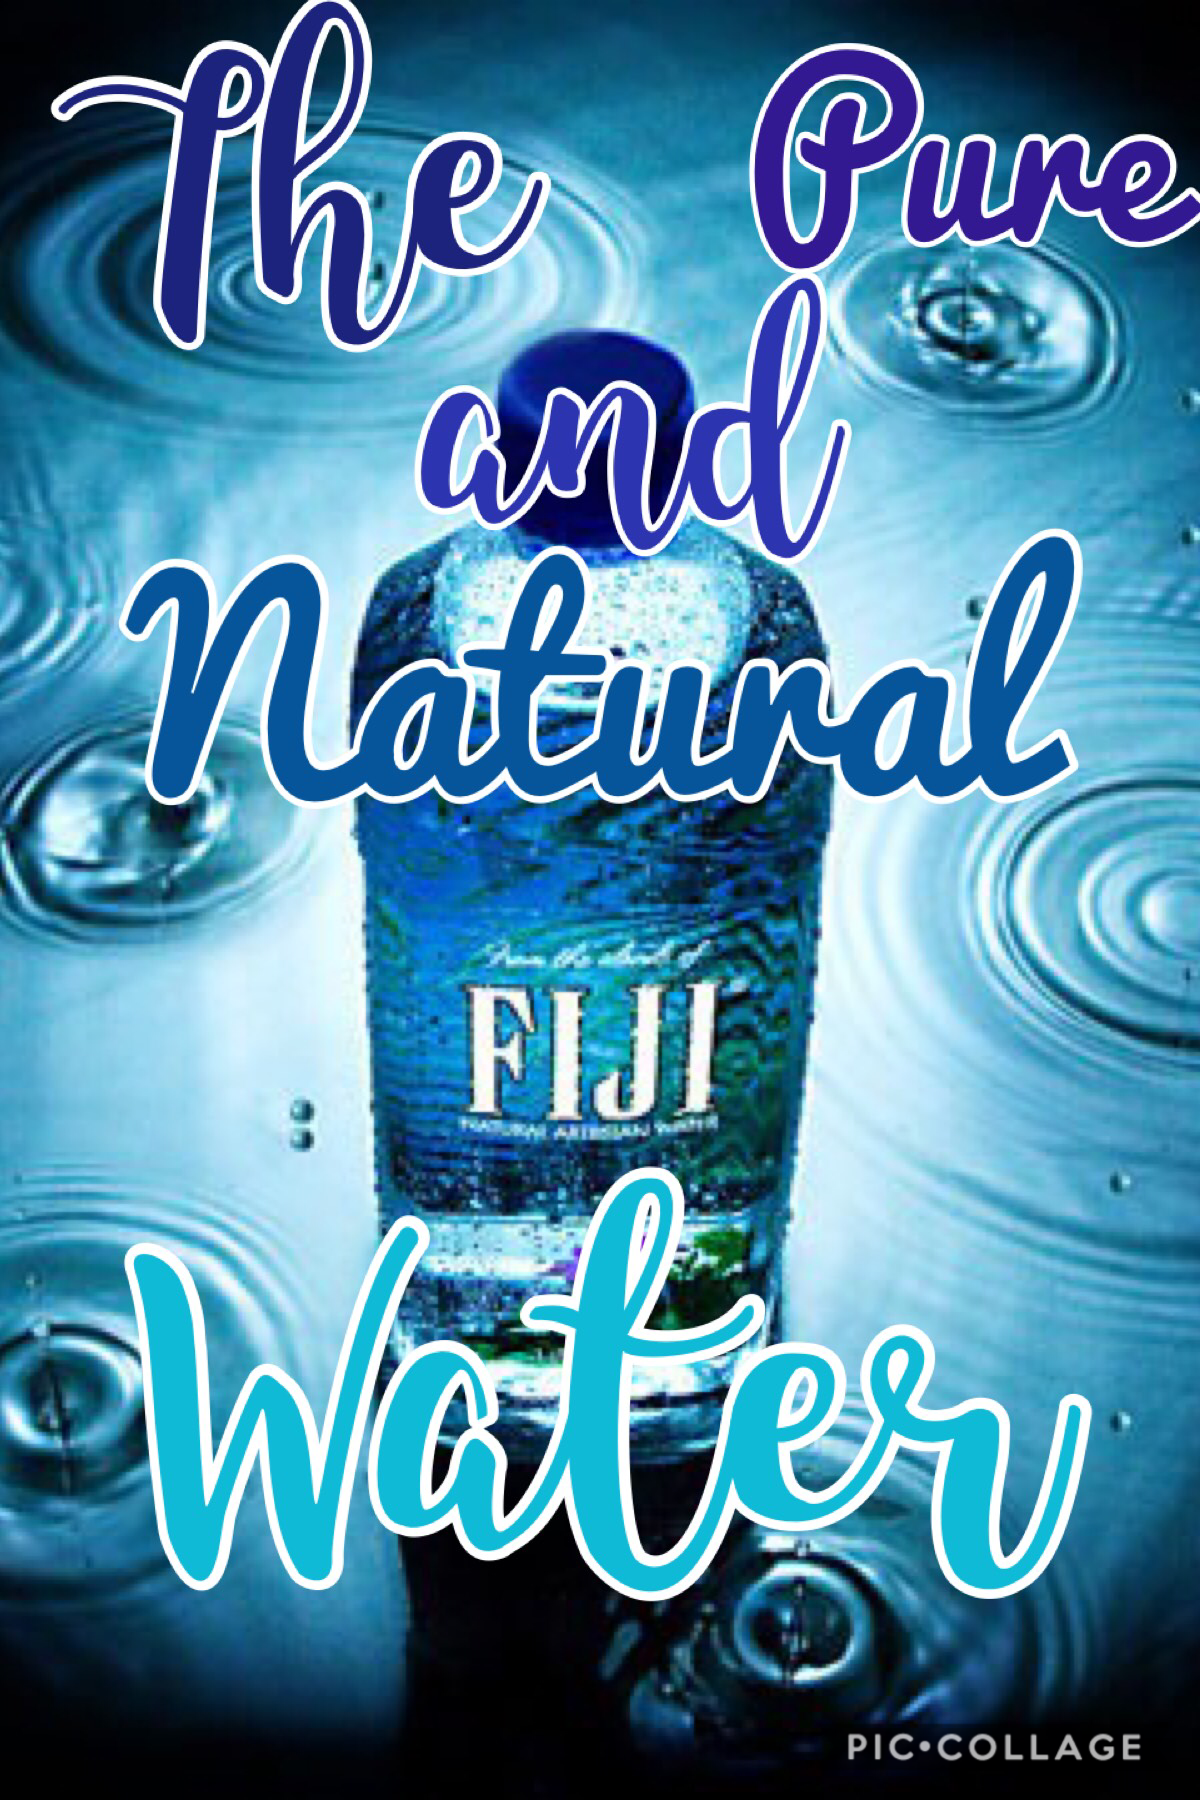 ❤️Fiji🇫🇯Best Water❤️